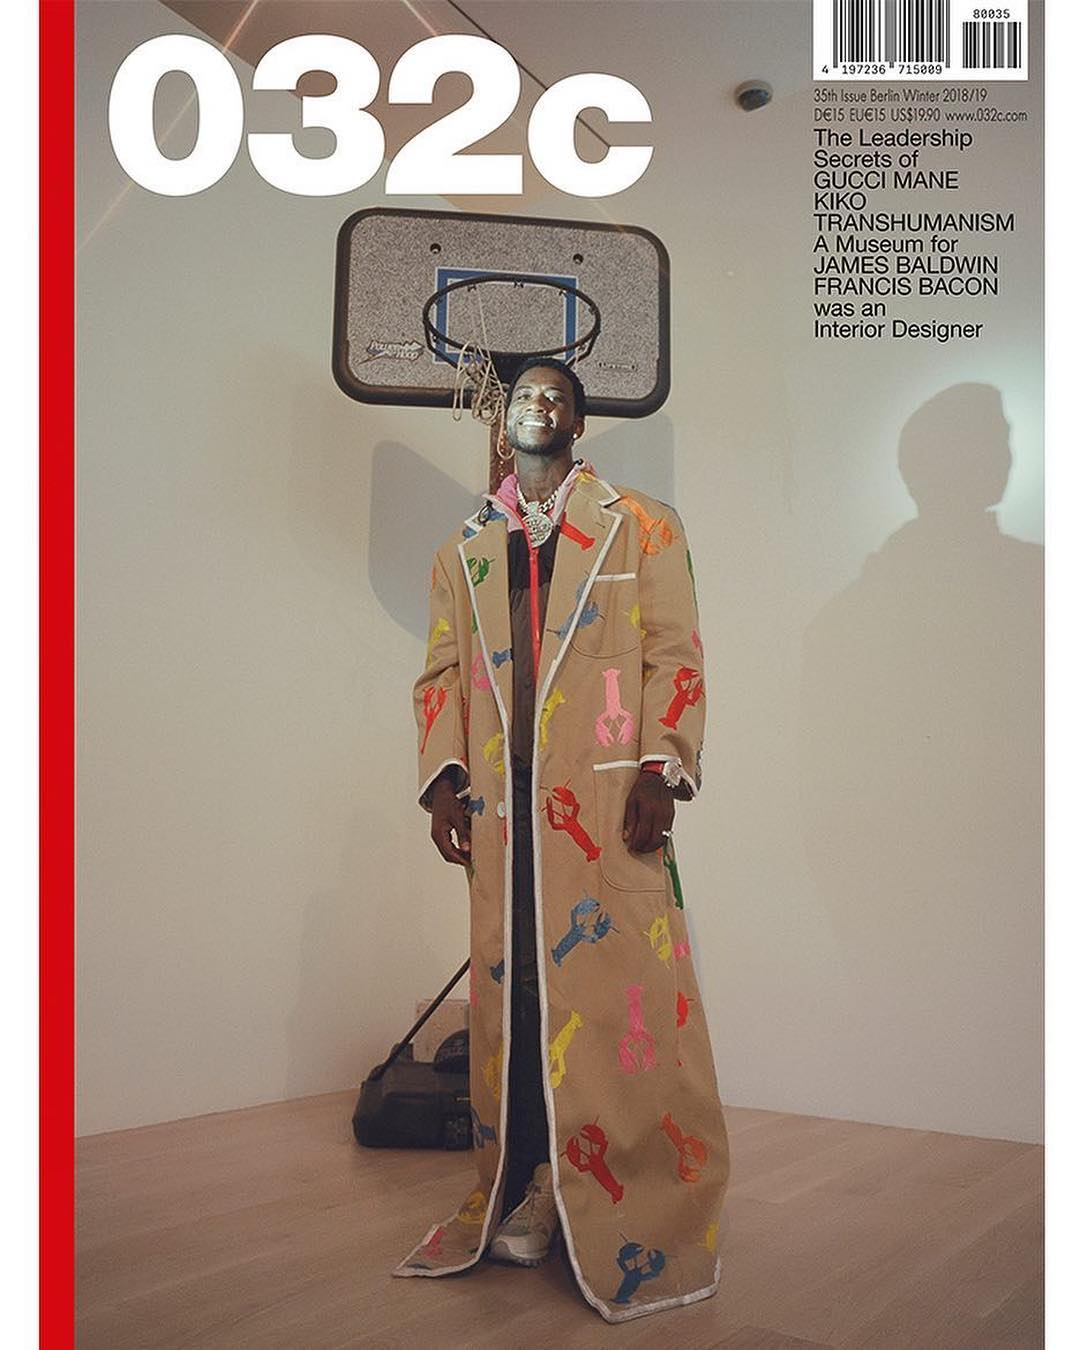 SPOTTED: Gucci Mane covers 032c Magazine in Thom Browne